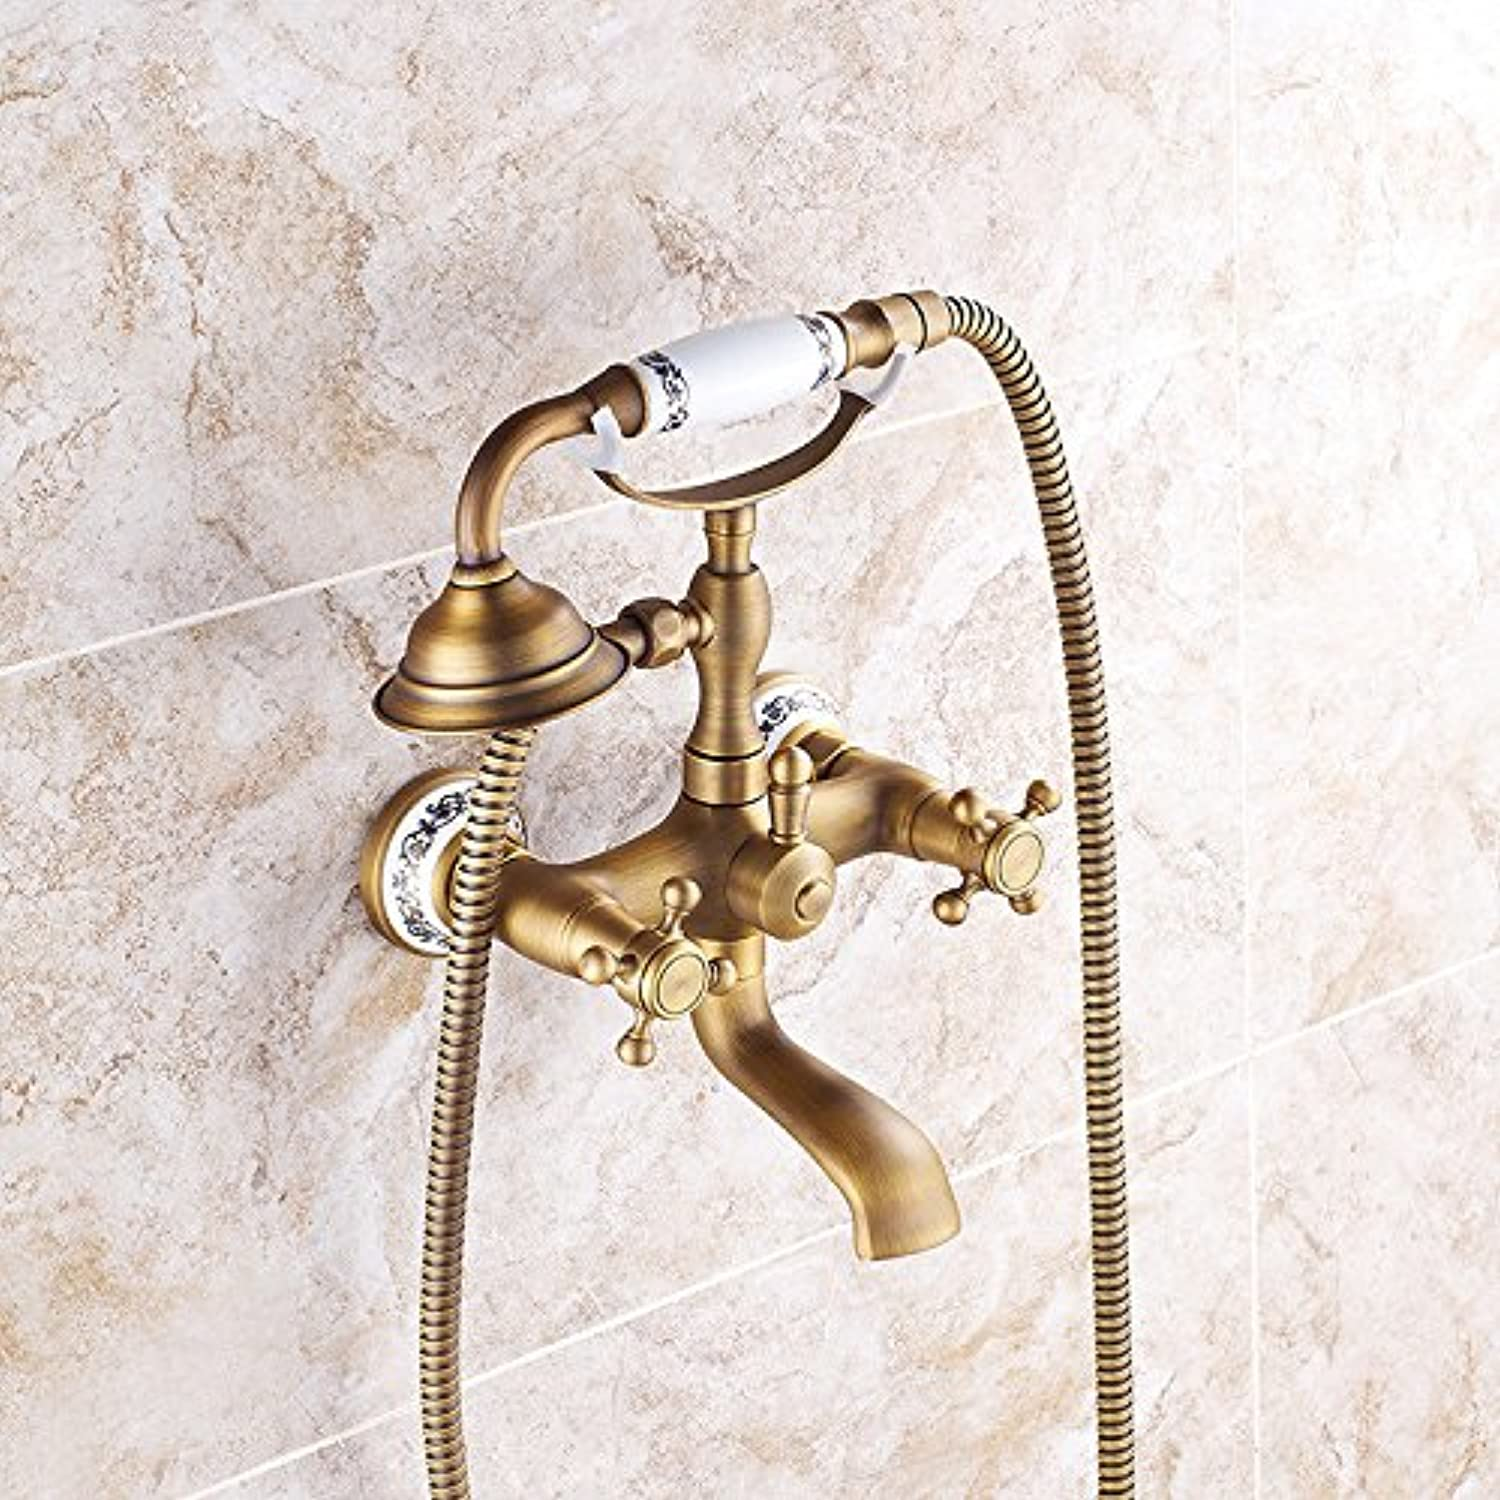 Hlluya Professional Sink Mixer Tap Kitchen Faucet Shower column antique golden showers shower Kit Shower Faucet